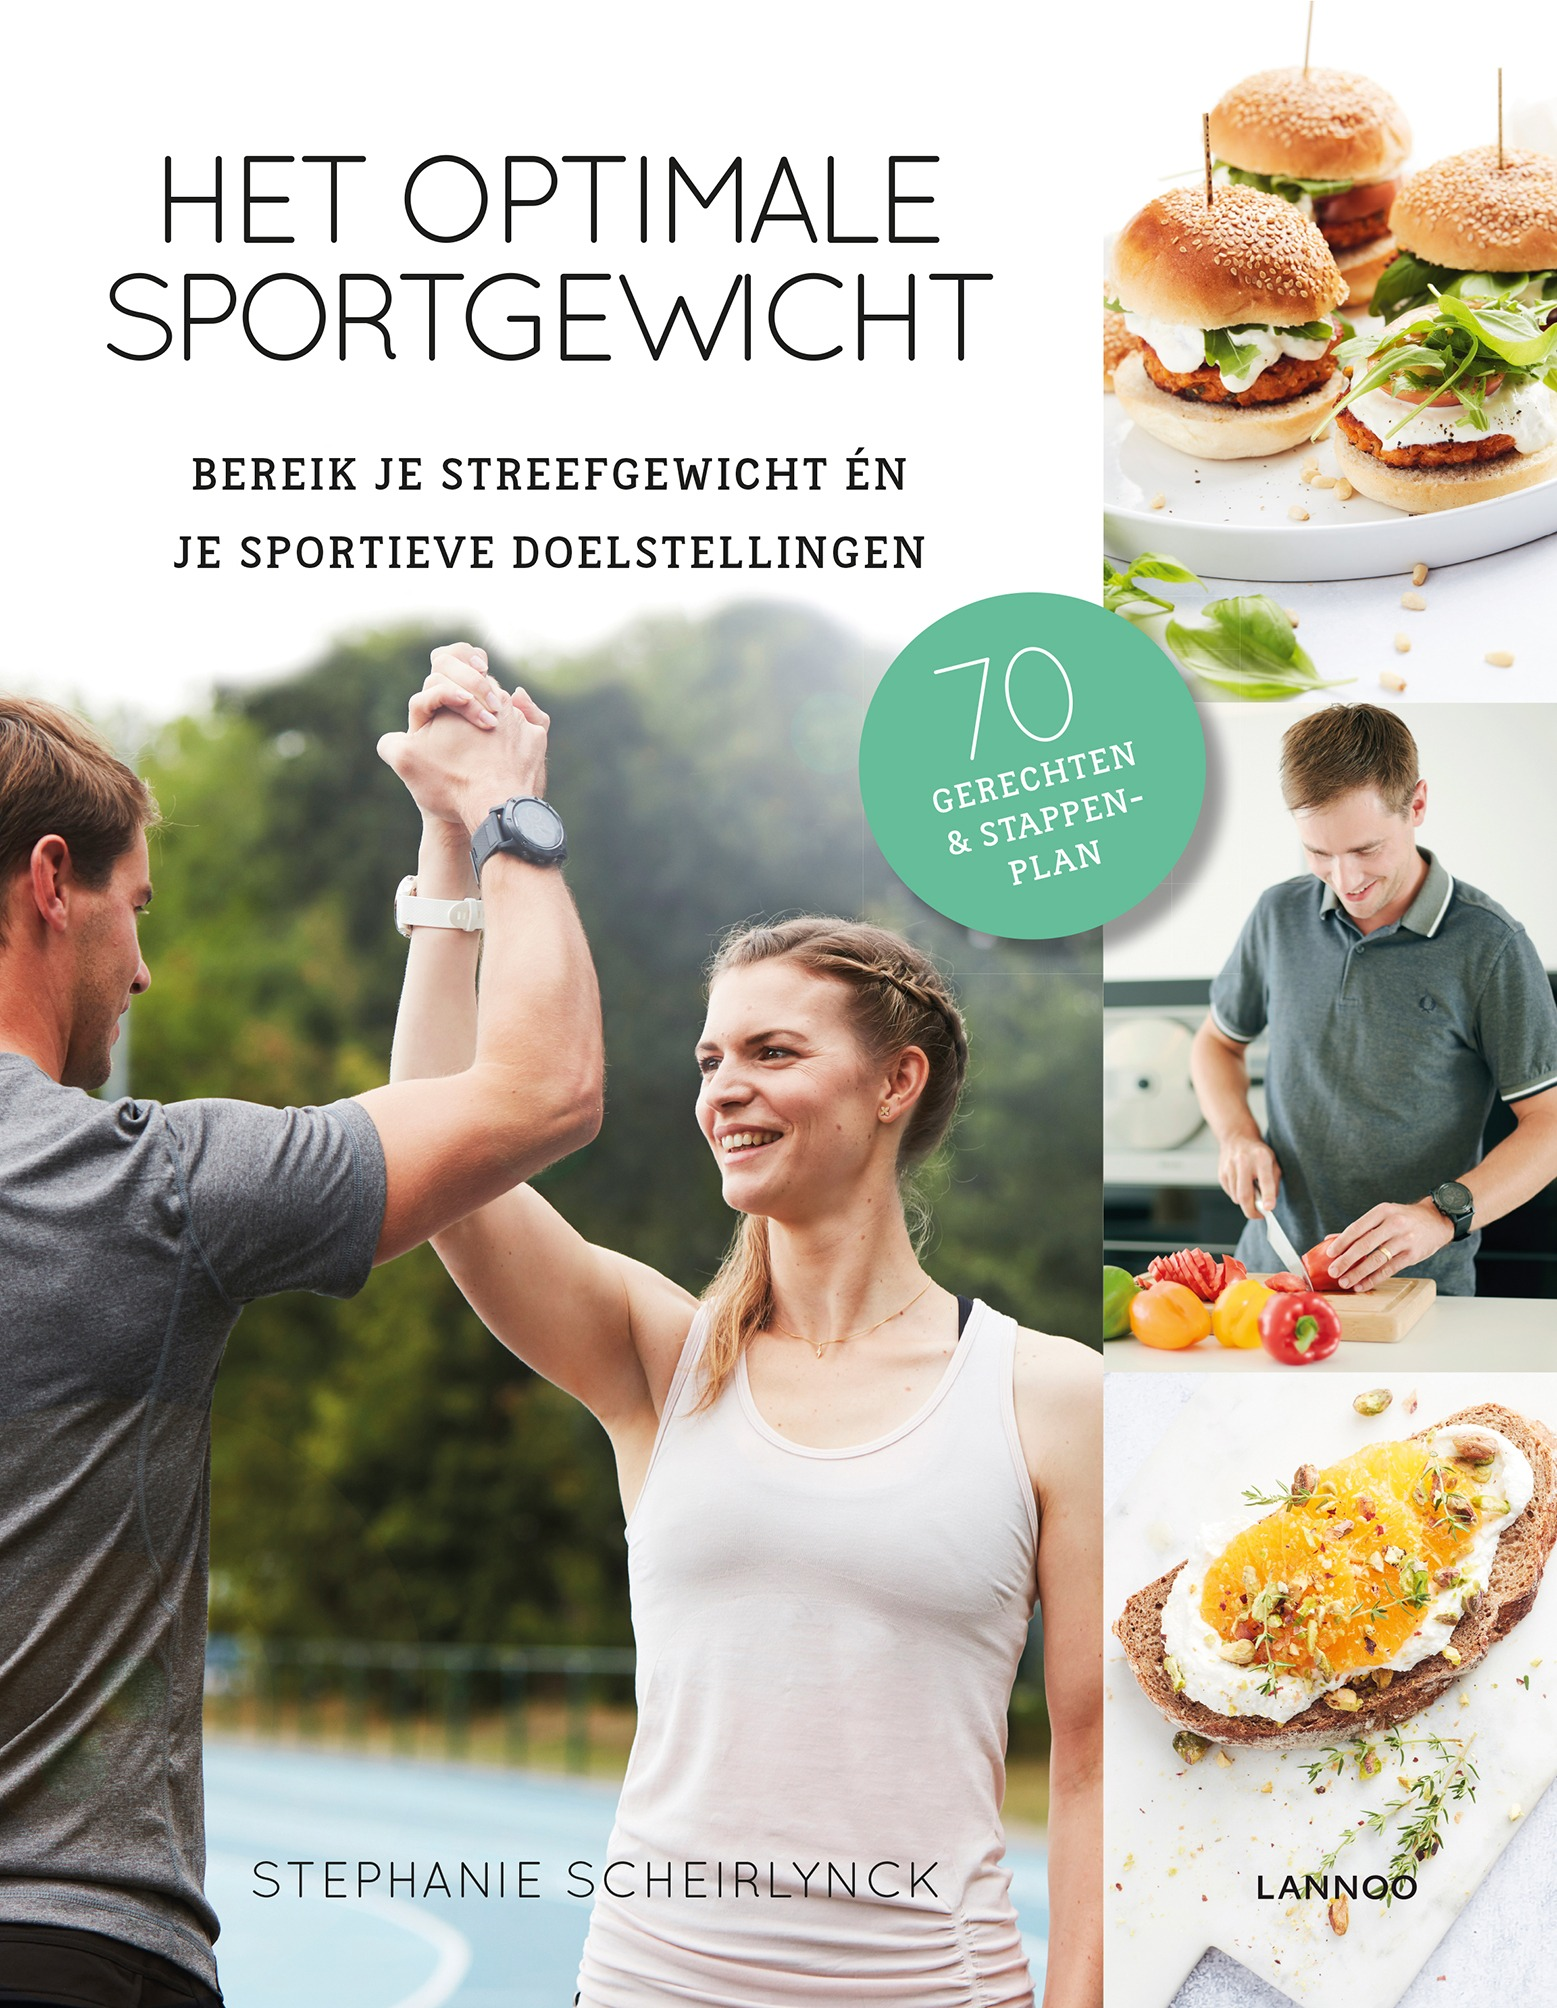 cover_het optimale sportgewicht-tracé••.indd